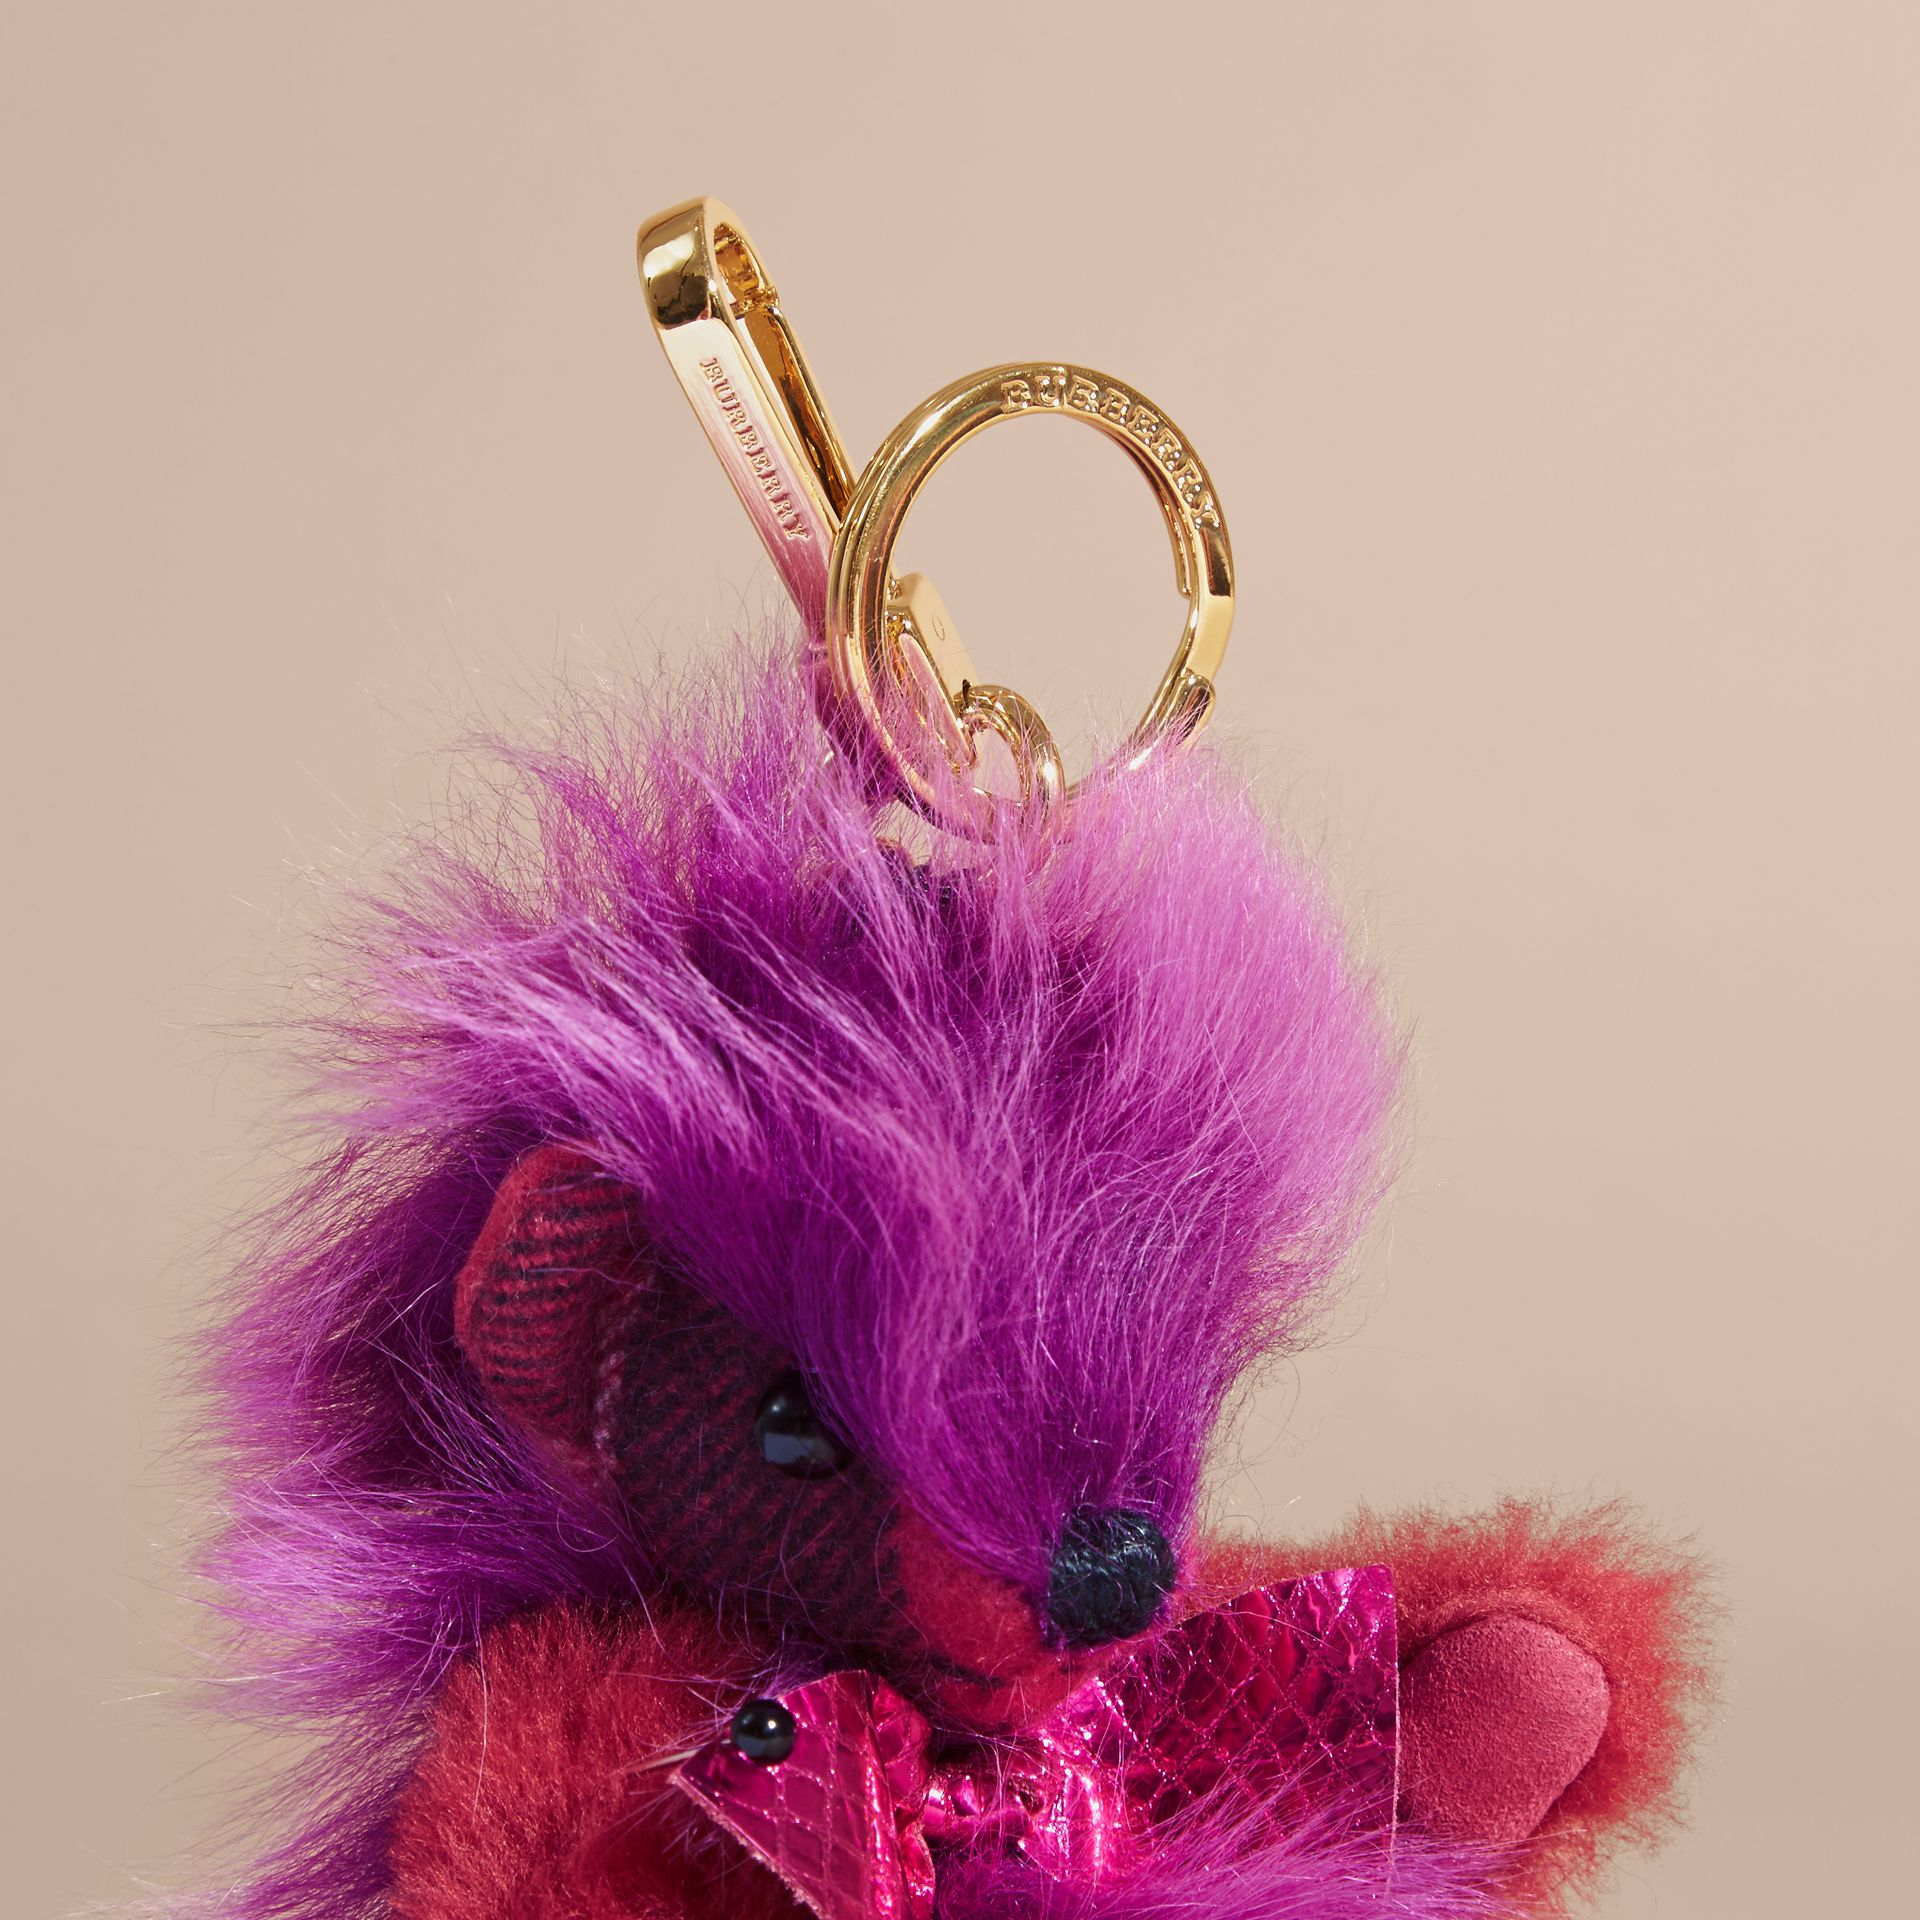 Thomas Bear Pom-Pom Charm in Check Cashmere in Fuchsia Pink - Women | Burberry United States - gallery image 2